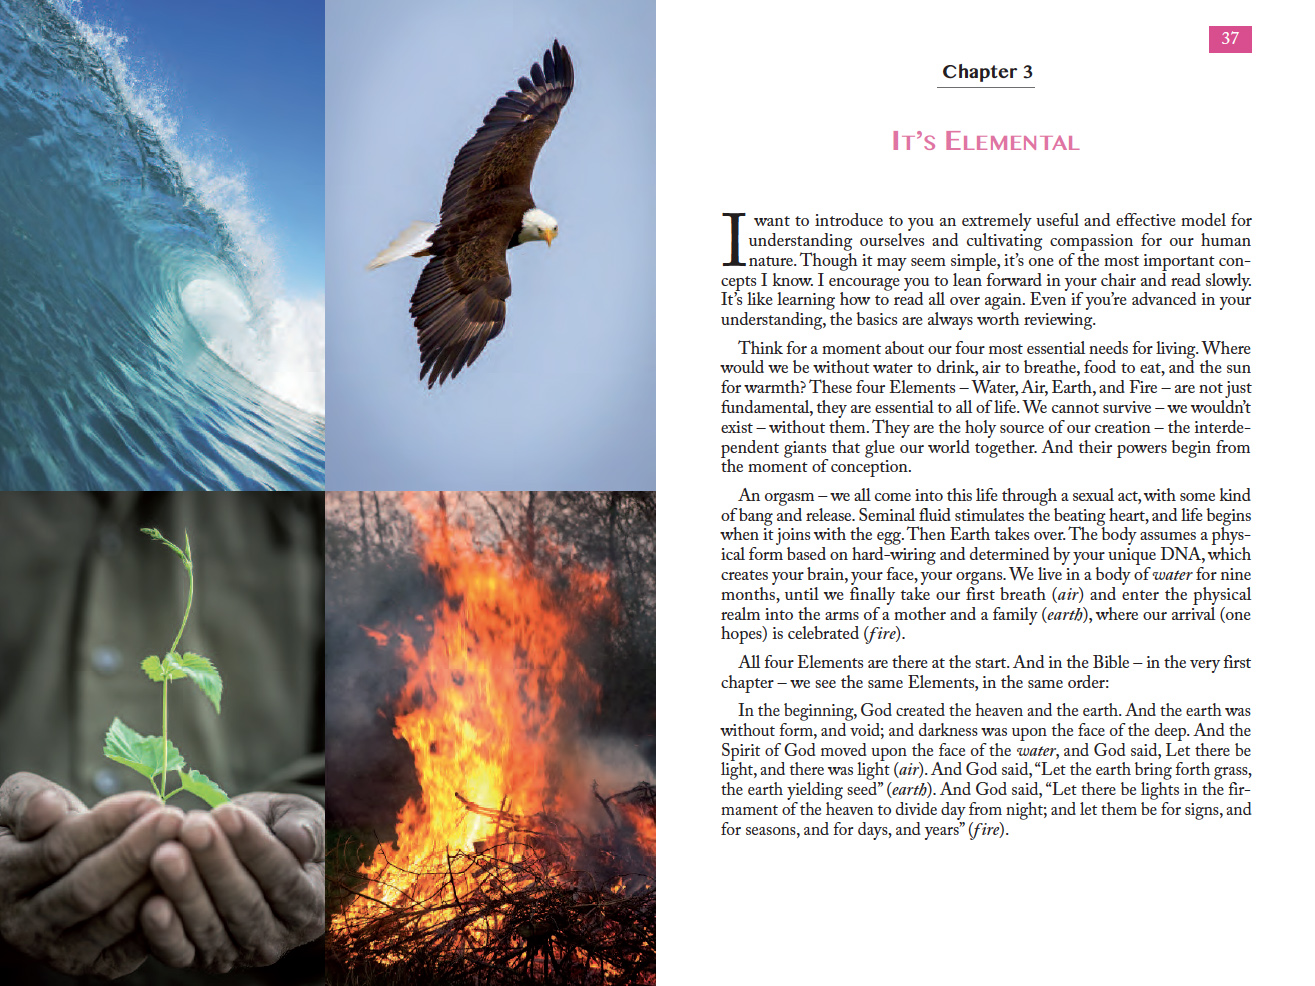 Client: Debra Silverman and Findhorn Press Project - Book: The Missing Element Details: llustrate chapter openers for The Missing Element. Illustrate the human personality types and characteristics found in Water, Air, Earth, and Fire.